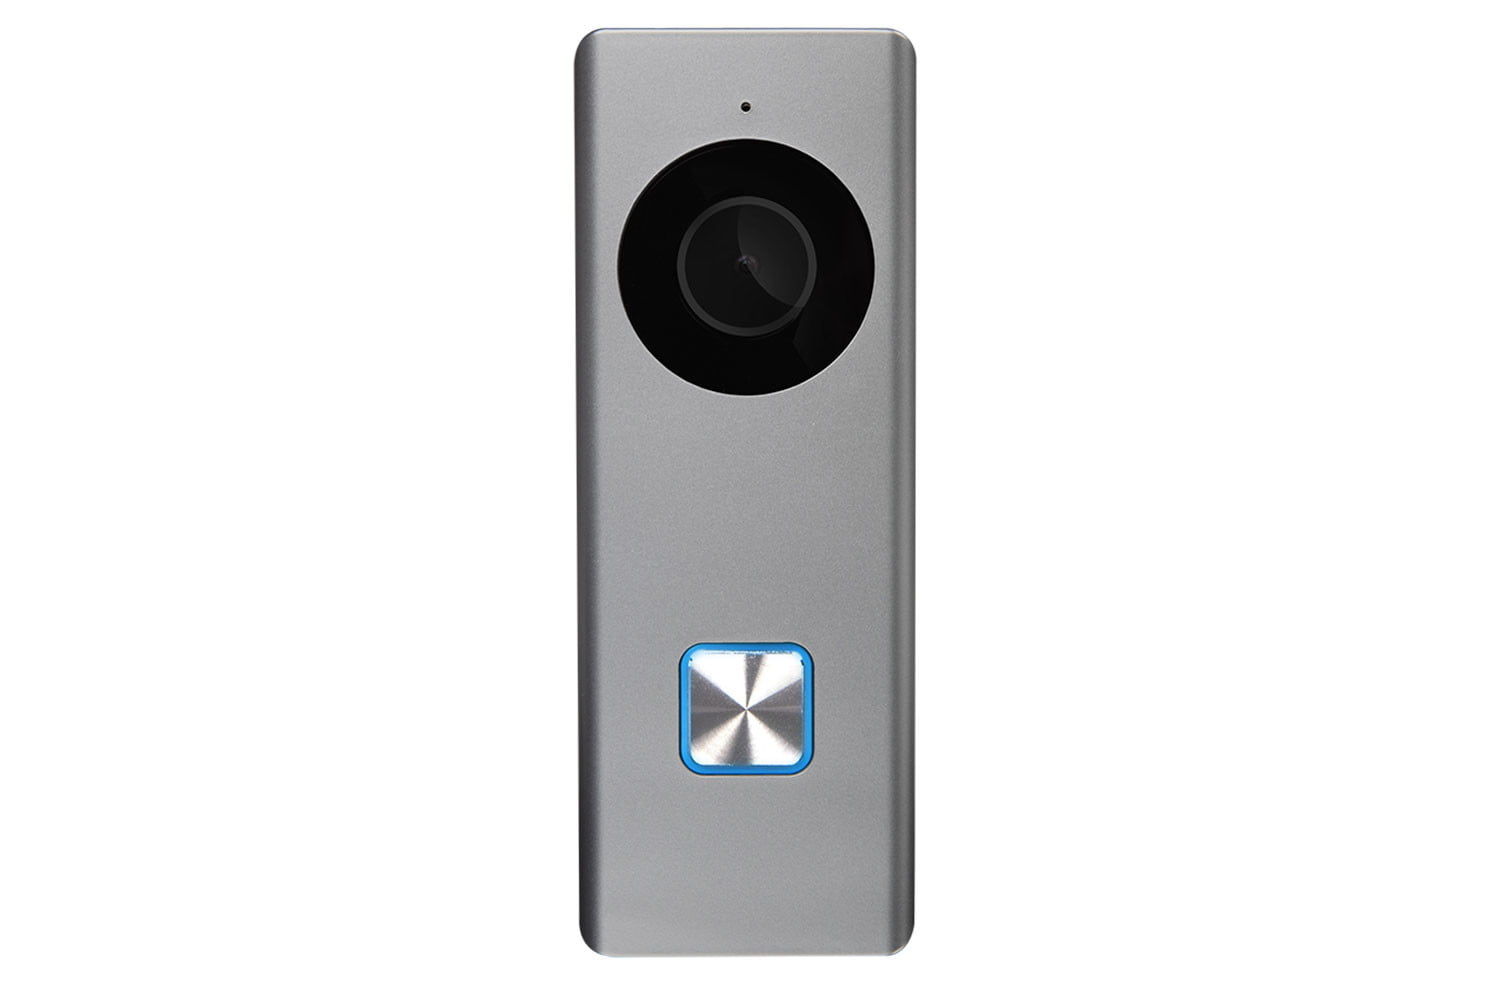 RCA Breaks Into the Smart Home Space With a Doorbell Camera